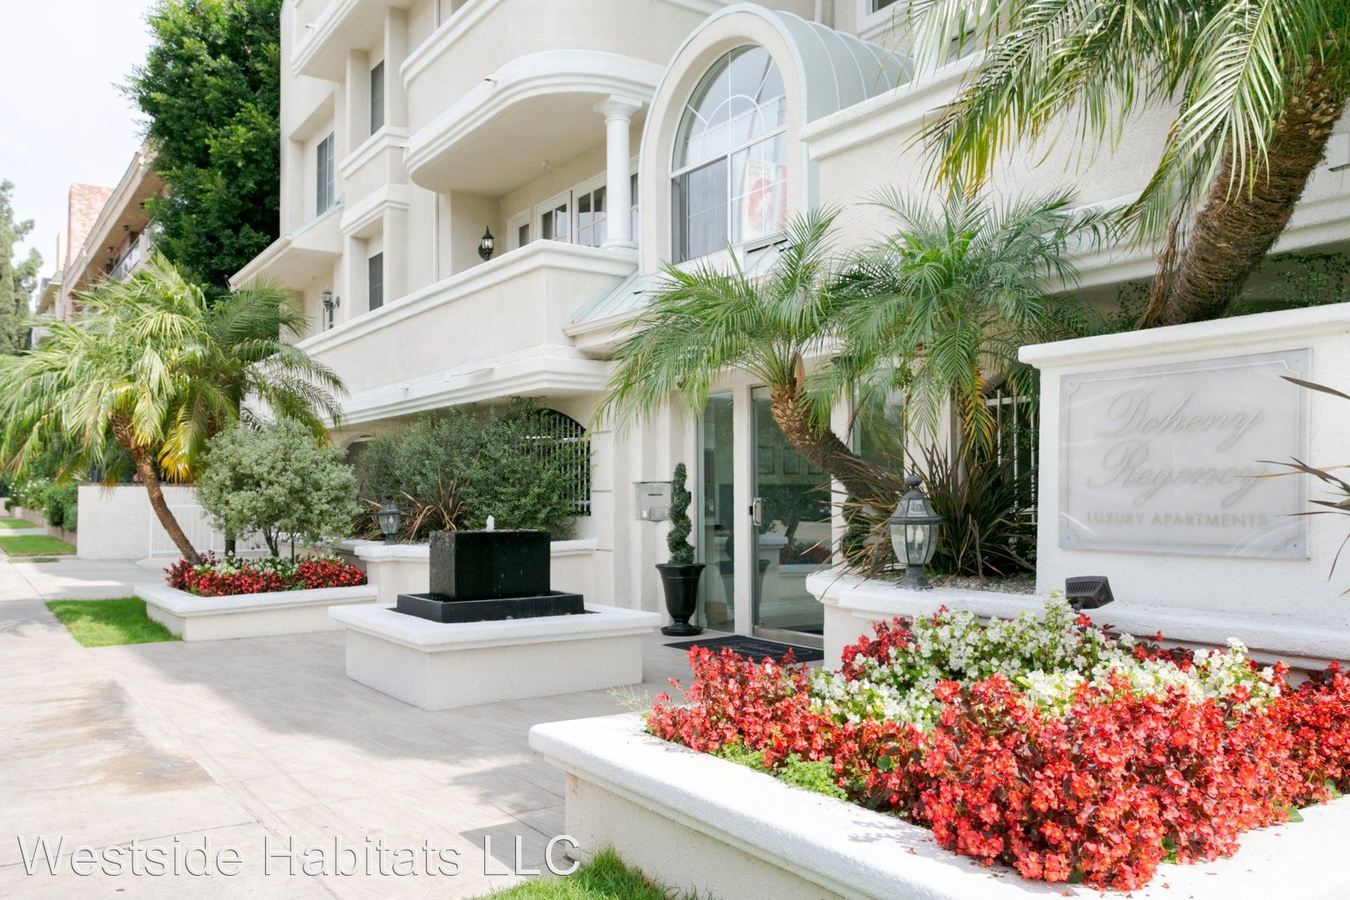 2 Bedrooms 2 Bathrooms Apartment for rent at 114 N. Doheny Drive in Los Angeles, CA